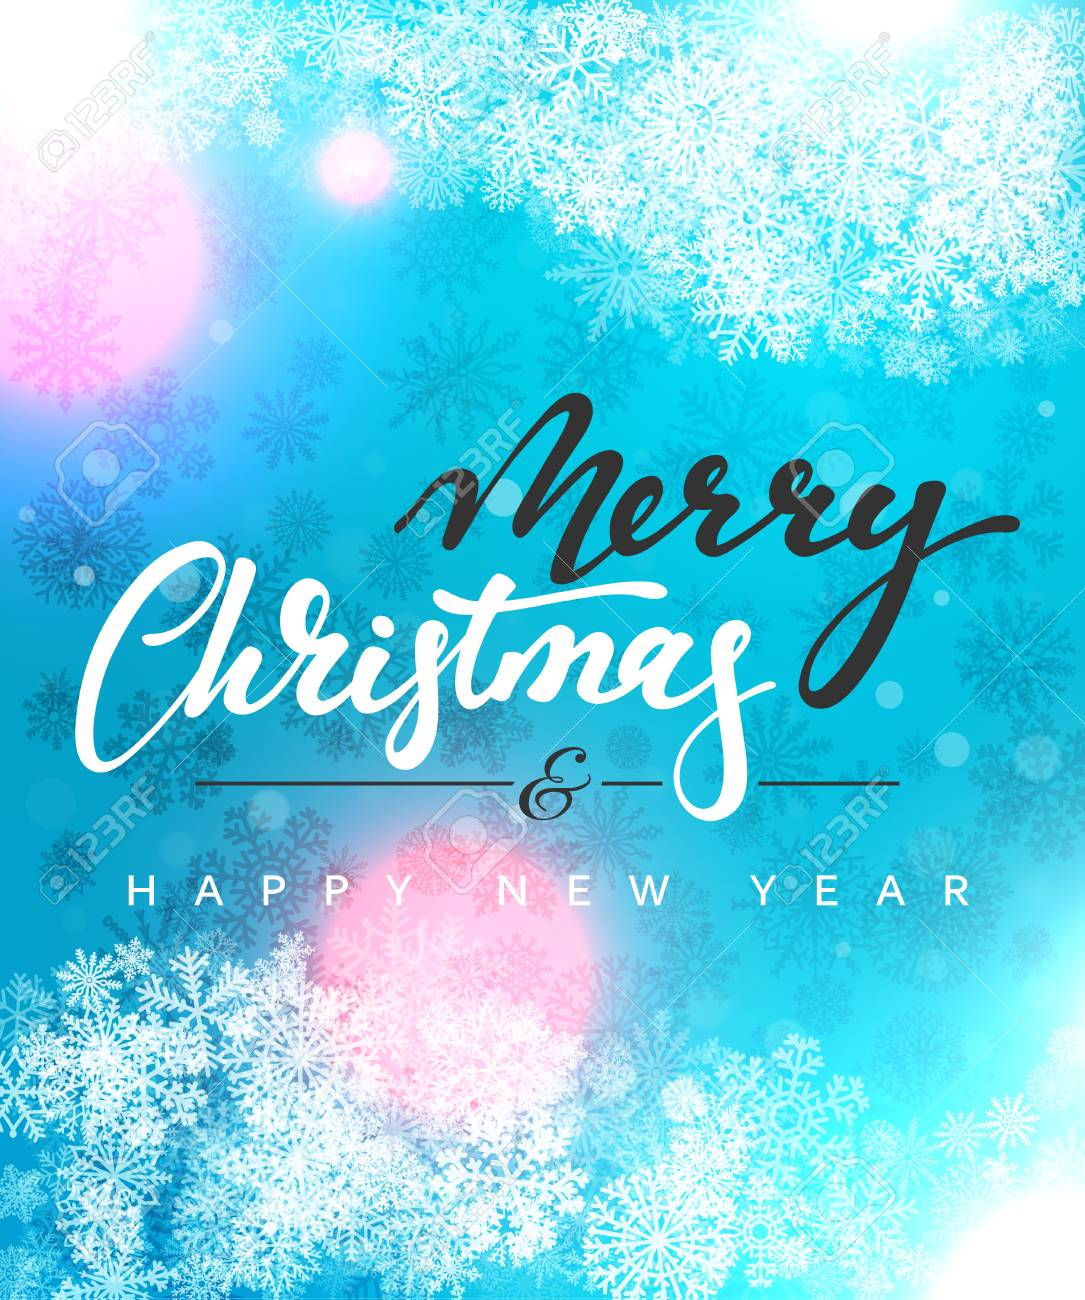 merry christmas and happy new year concept greeting card design postcard background for print or